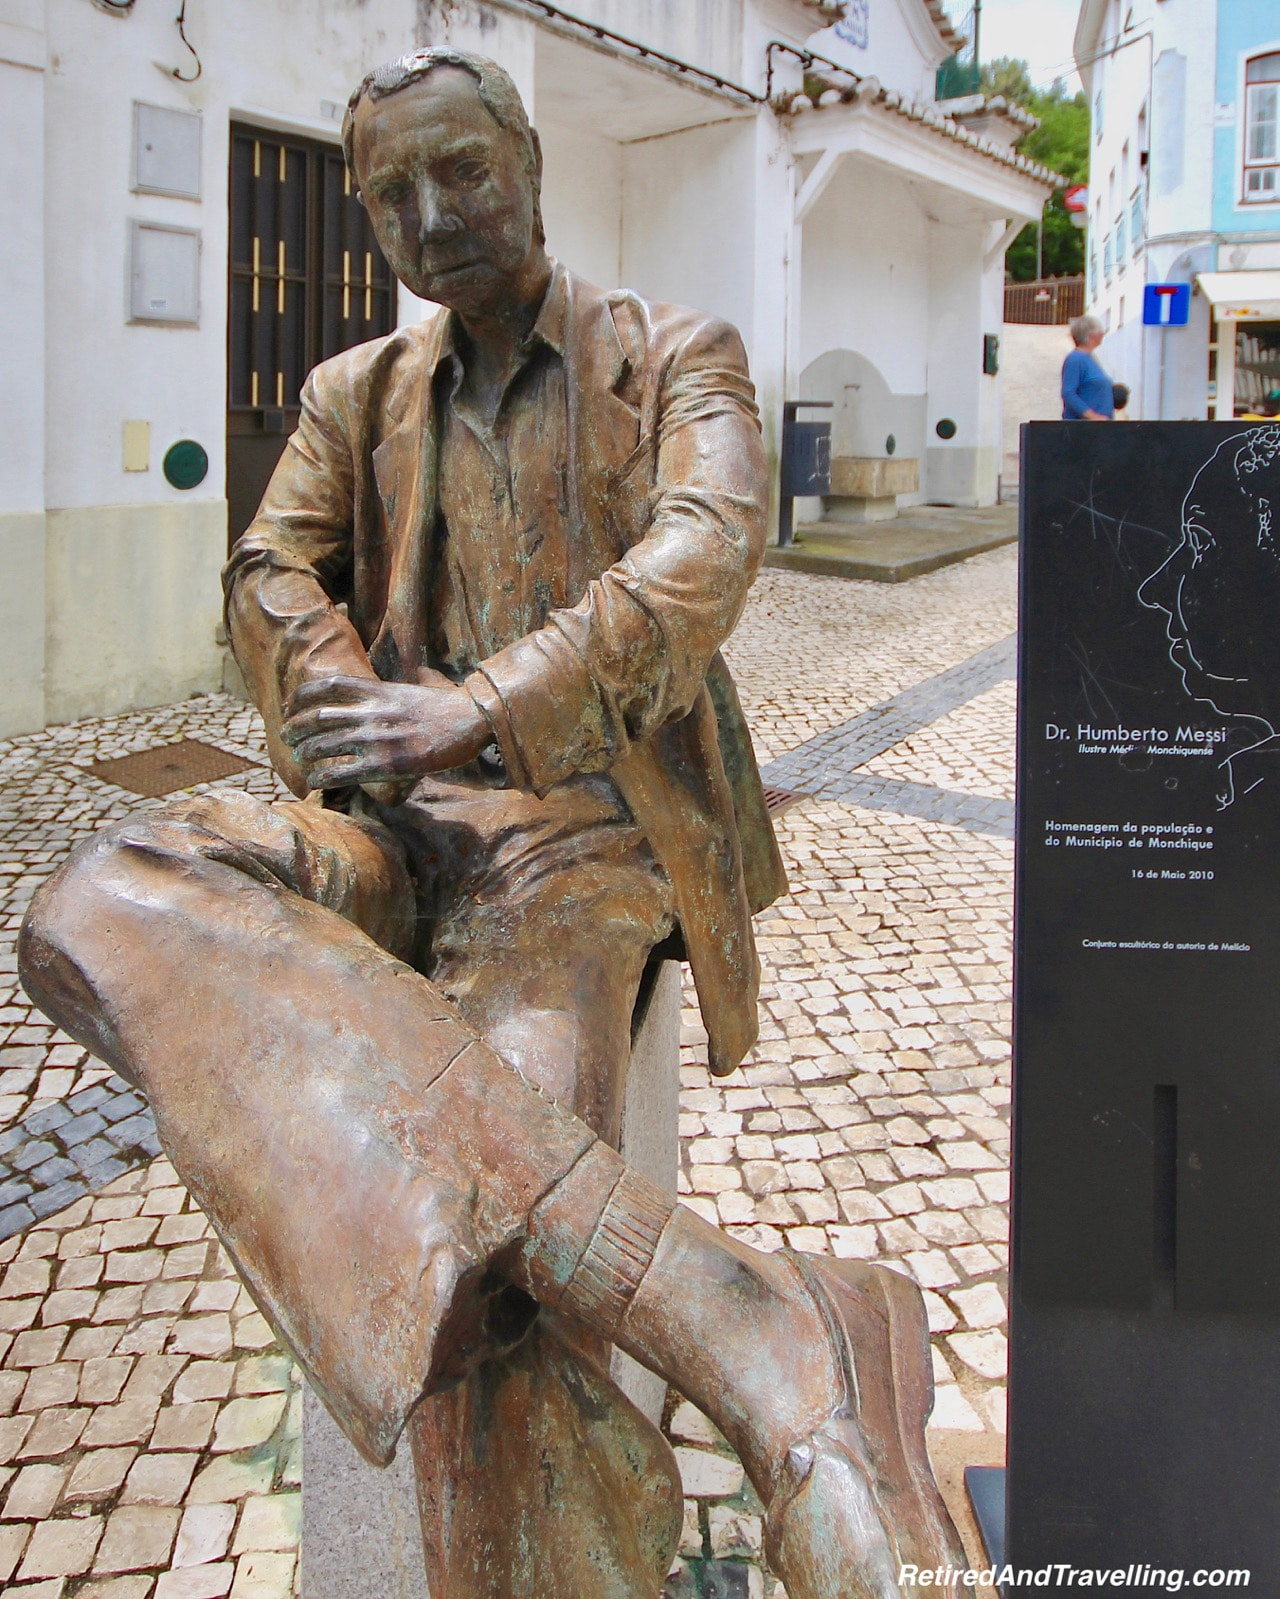 Dr Humberto Messi 2010 Statue in Monchique Village - Algarve Mountains at Monchique.jpg